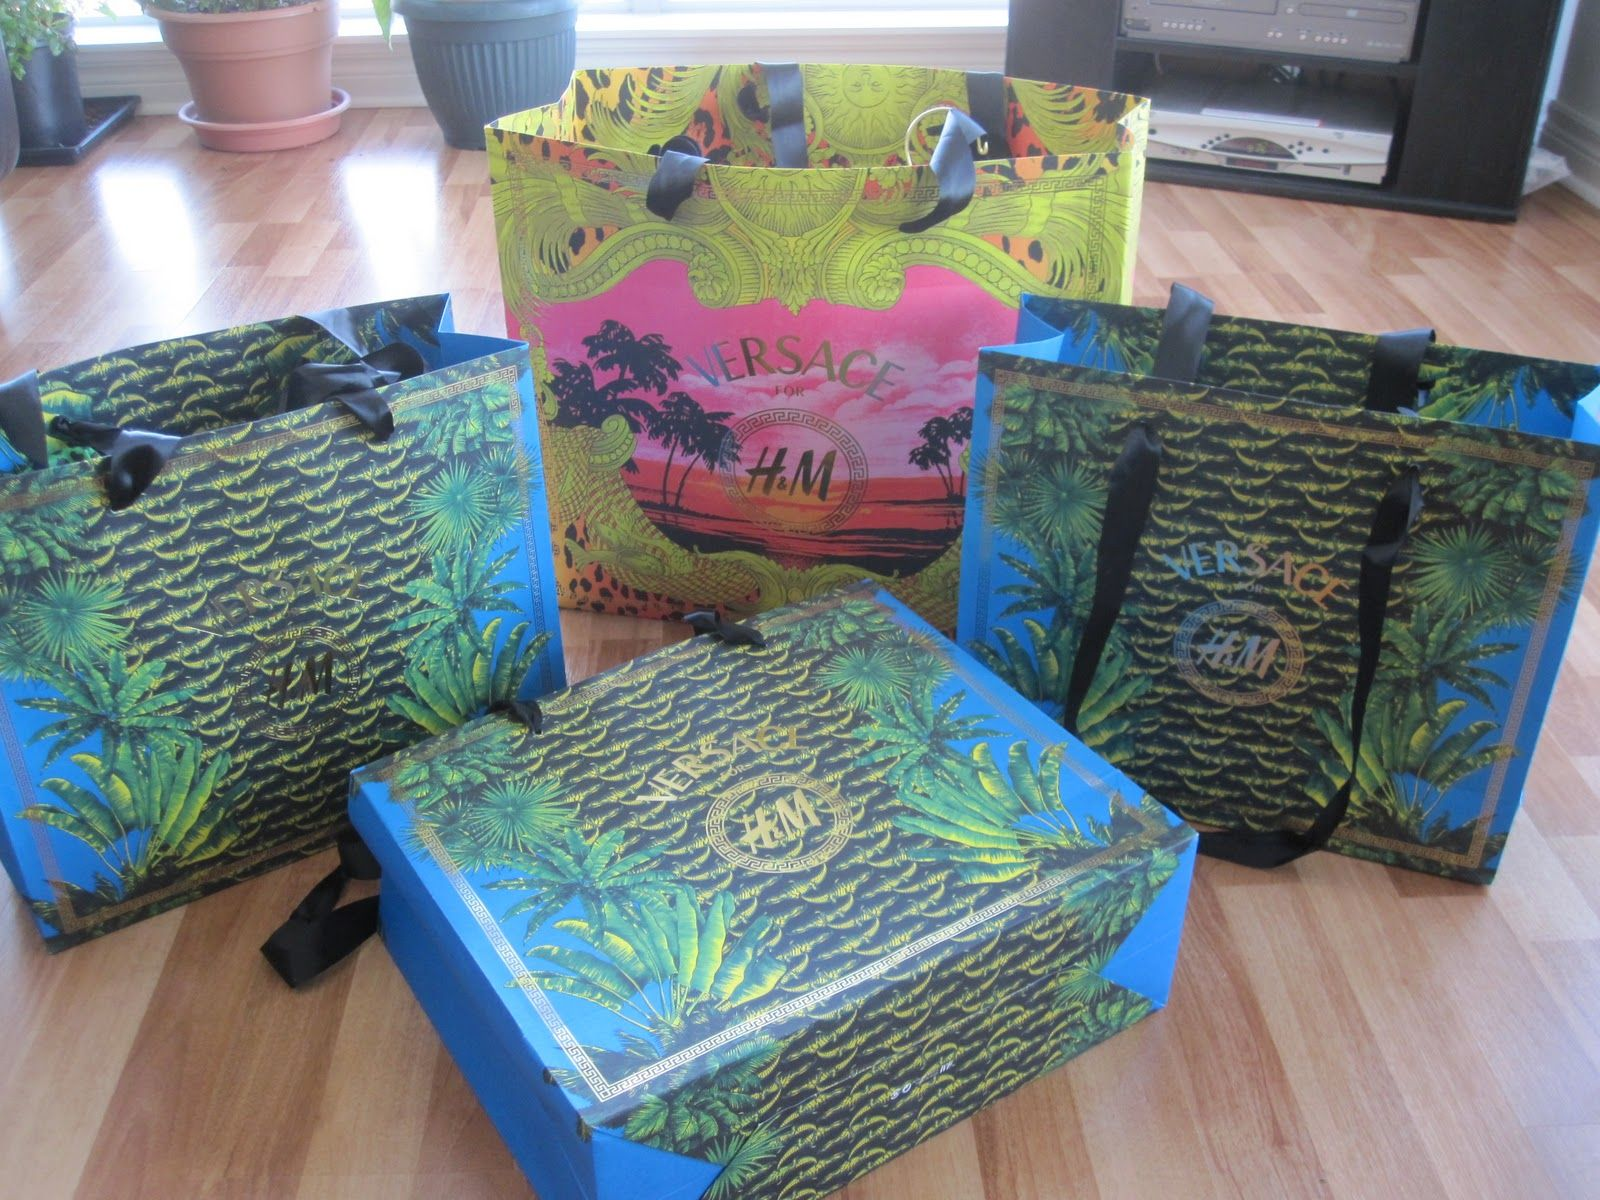 Versace branded shopping bags luxury wraps gift bags